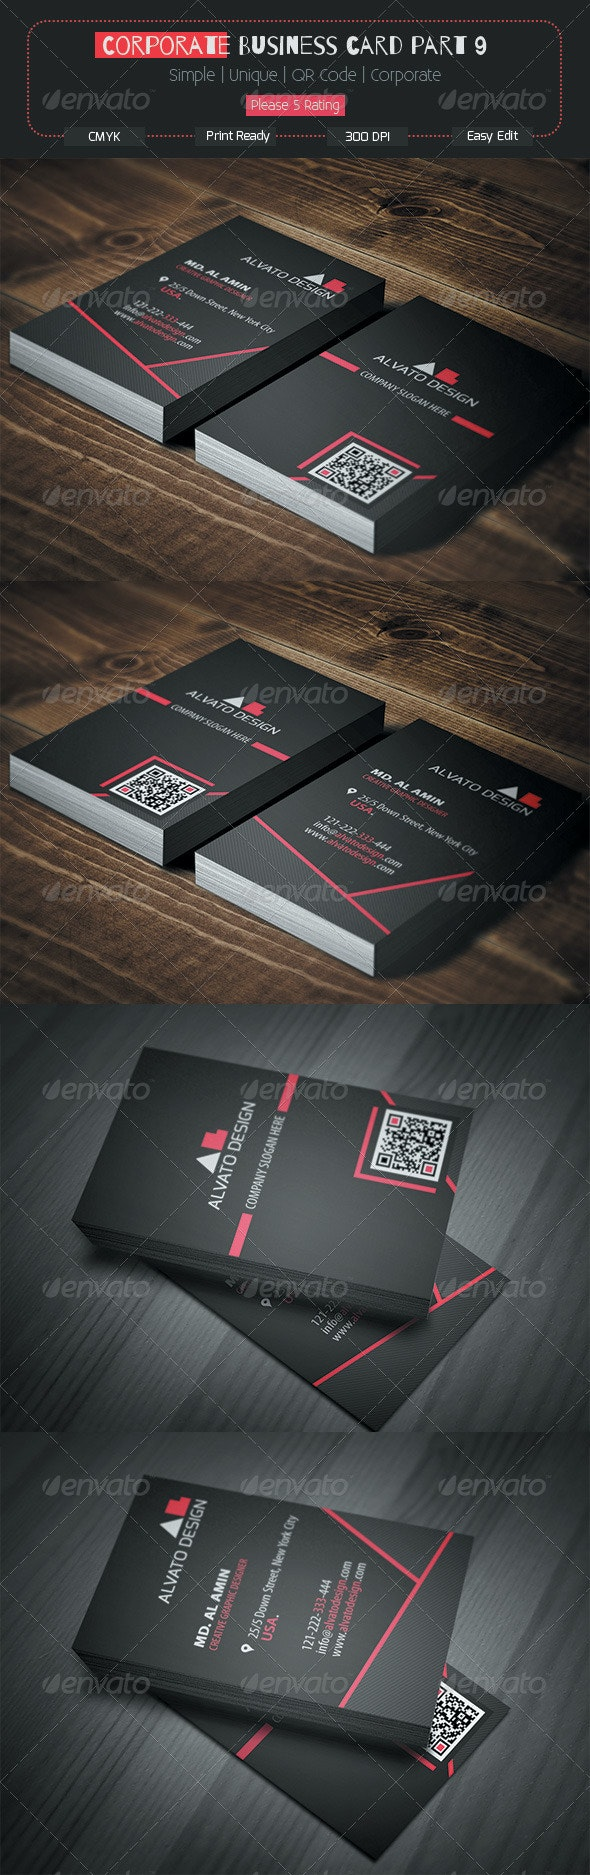 Corporate Business Card Part 9 - Corporate Business Cards